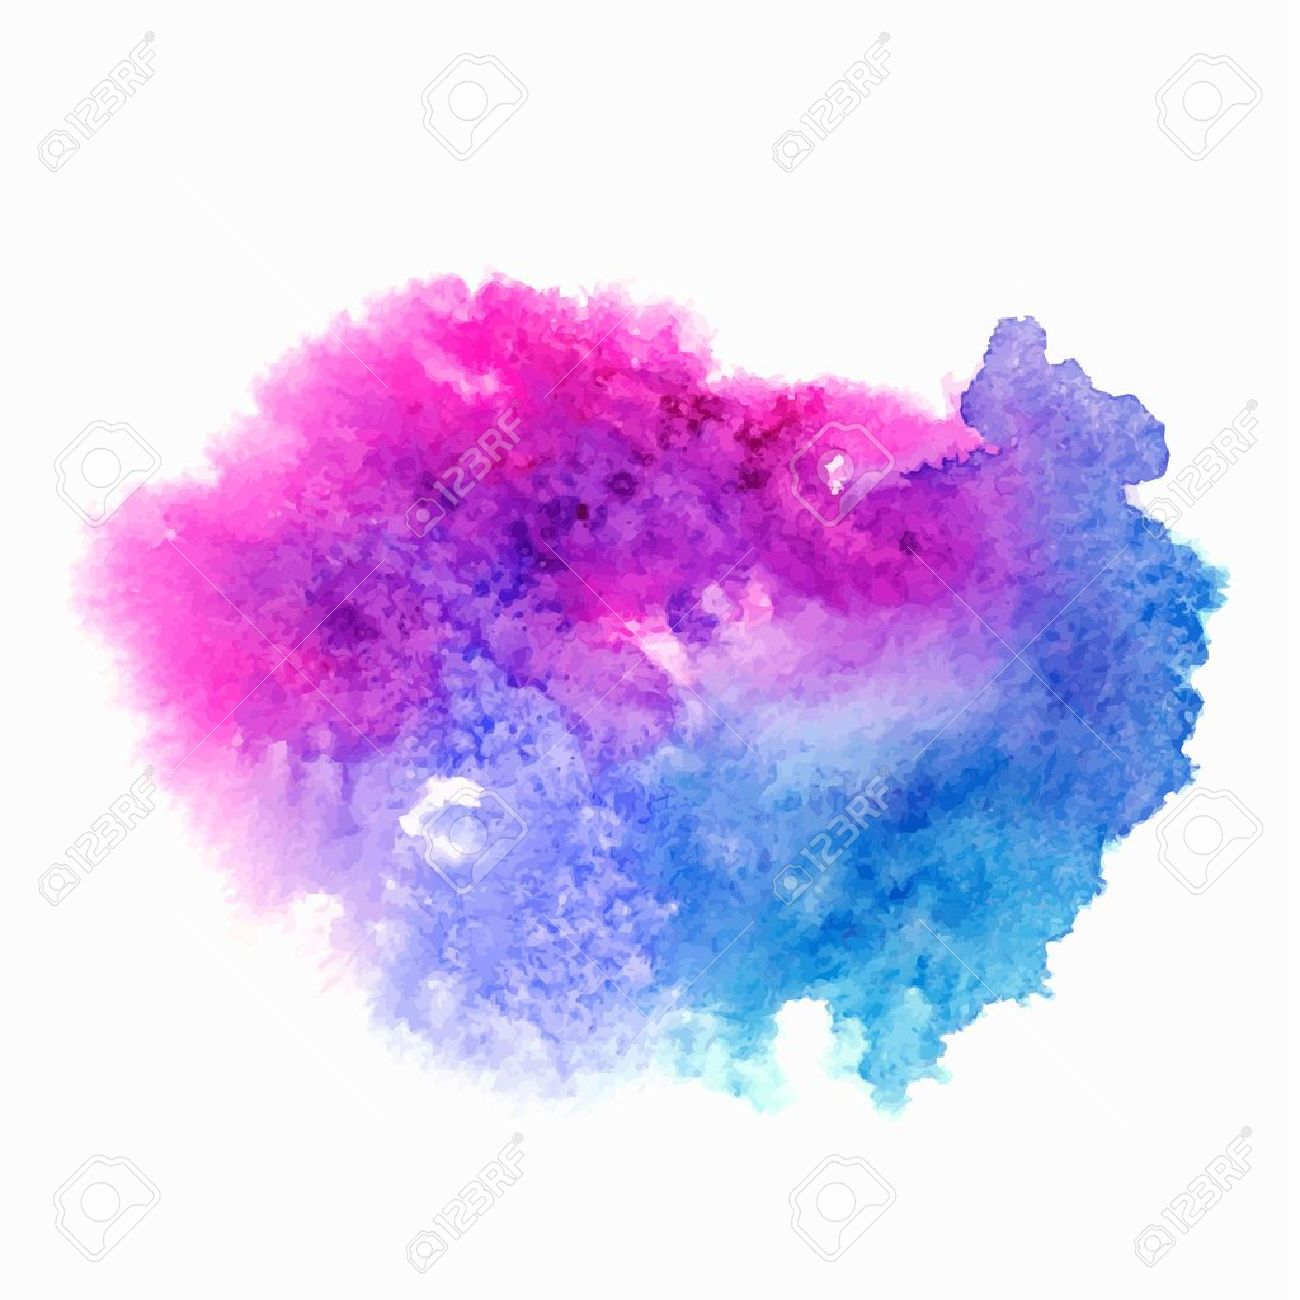 Abstract Watercolor Splash Royalty Free Cliparts Vectors And Stock Illustration Image 25020292 Shop watercolor splash onesies created by independent artists from around the globe. abstract watercolor splash